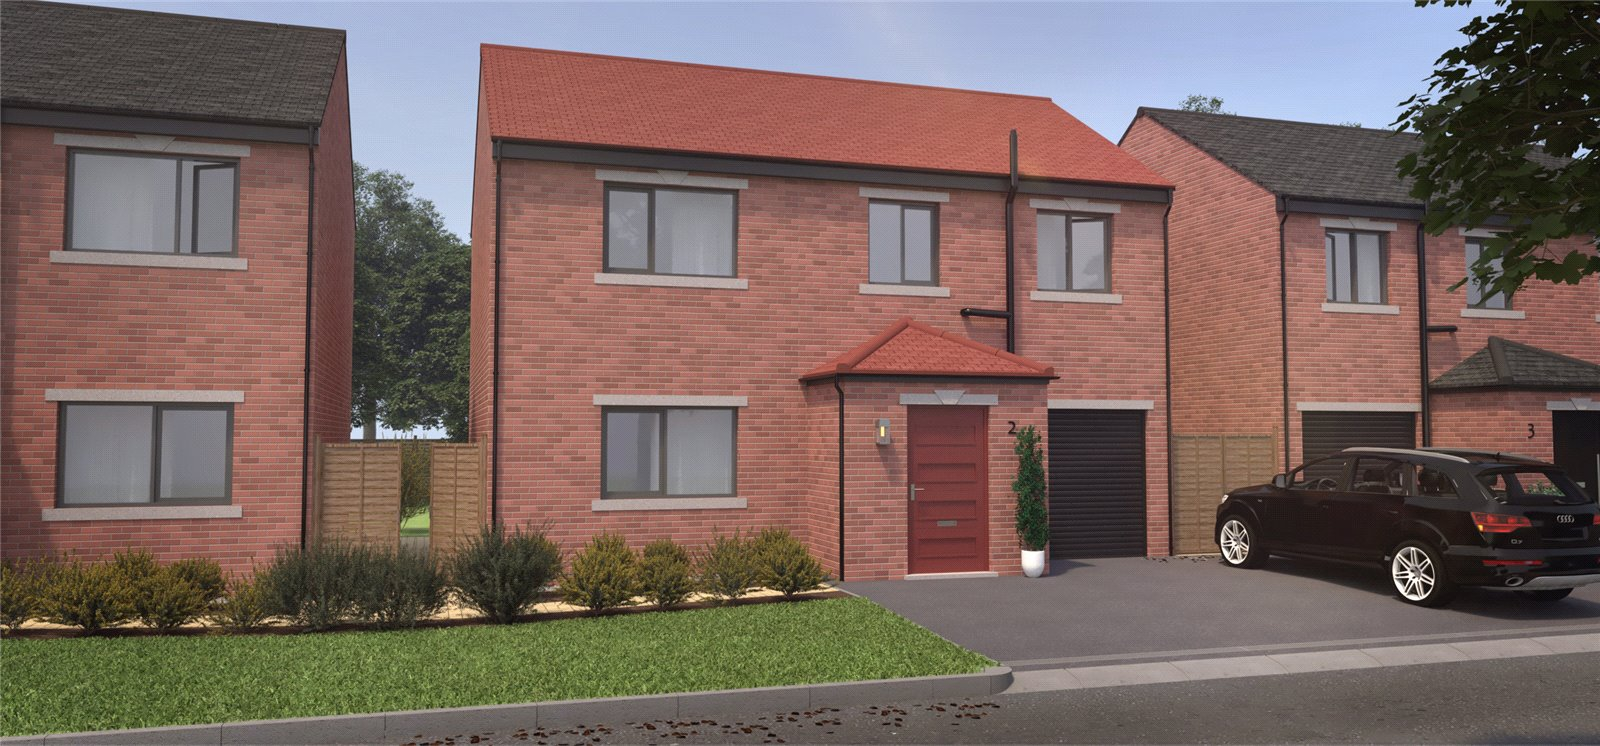 For sale in Coach Road, Brotton - Property Image 1